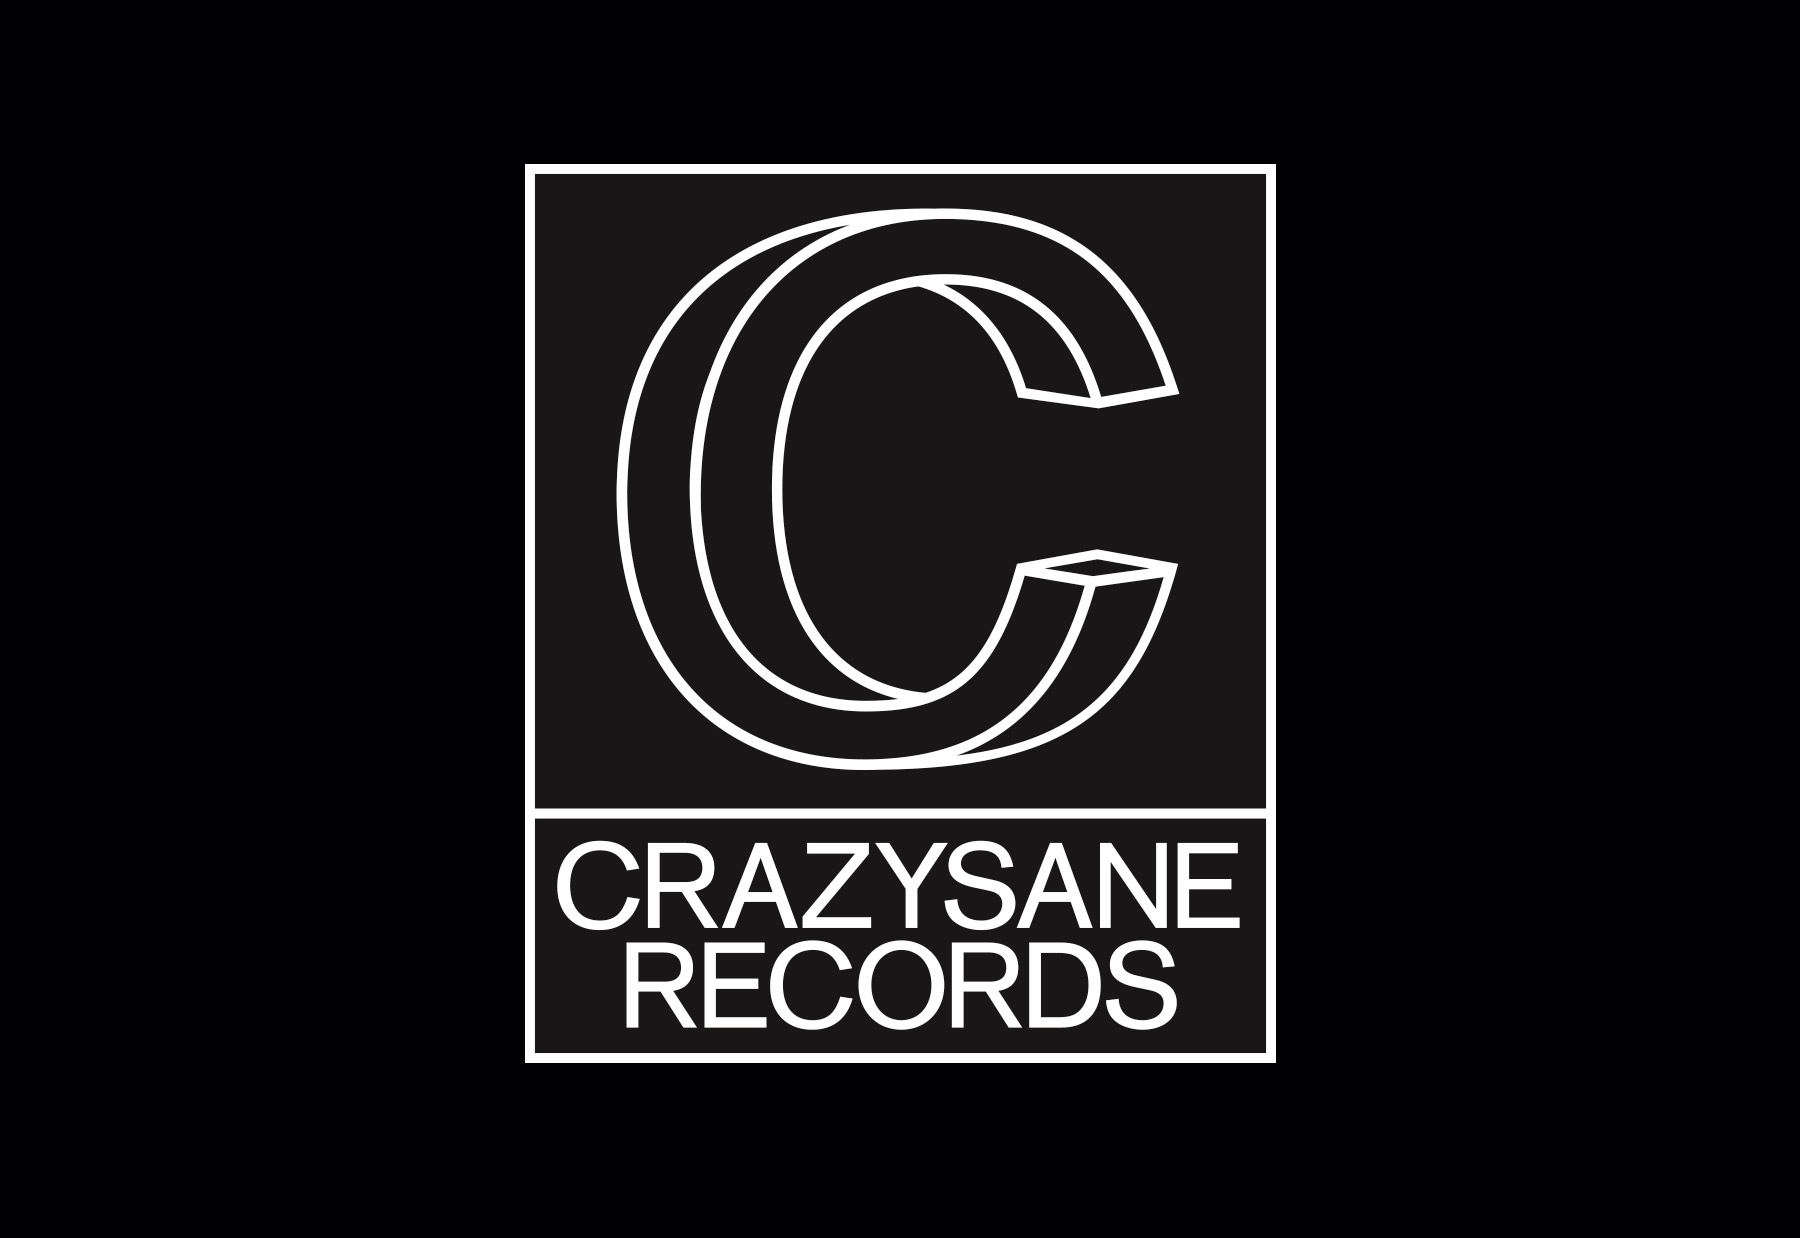 Fabian Bremer: Crazysane Records